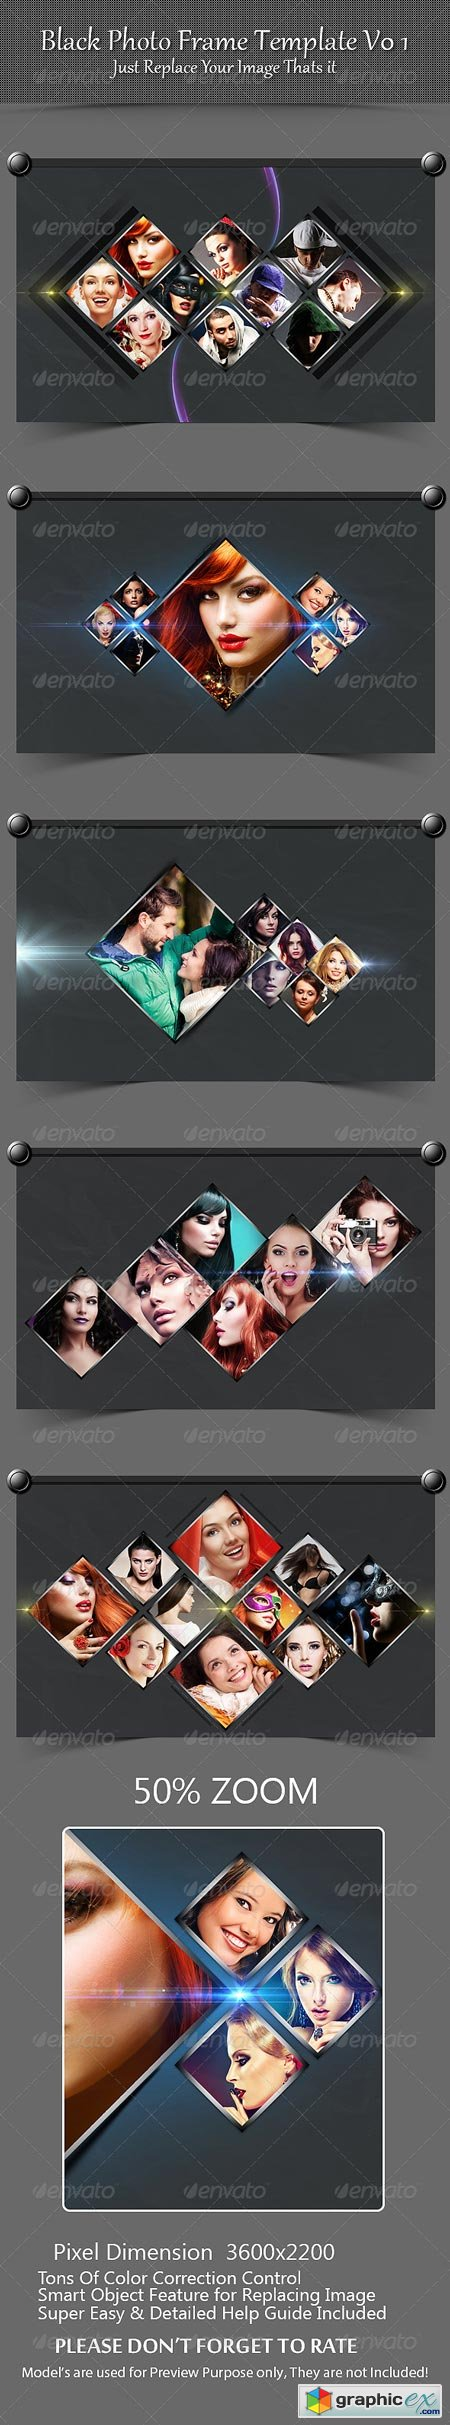 Black Photo Frame Template V01 8560823